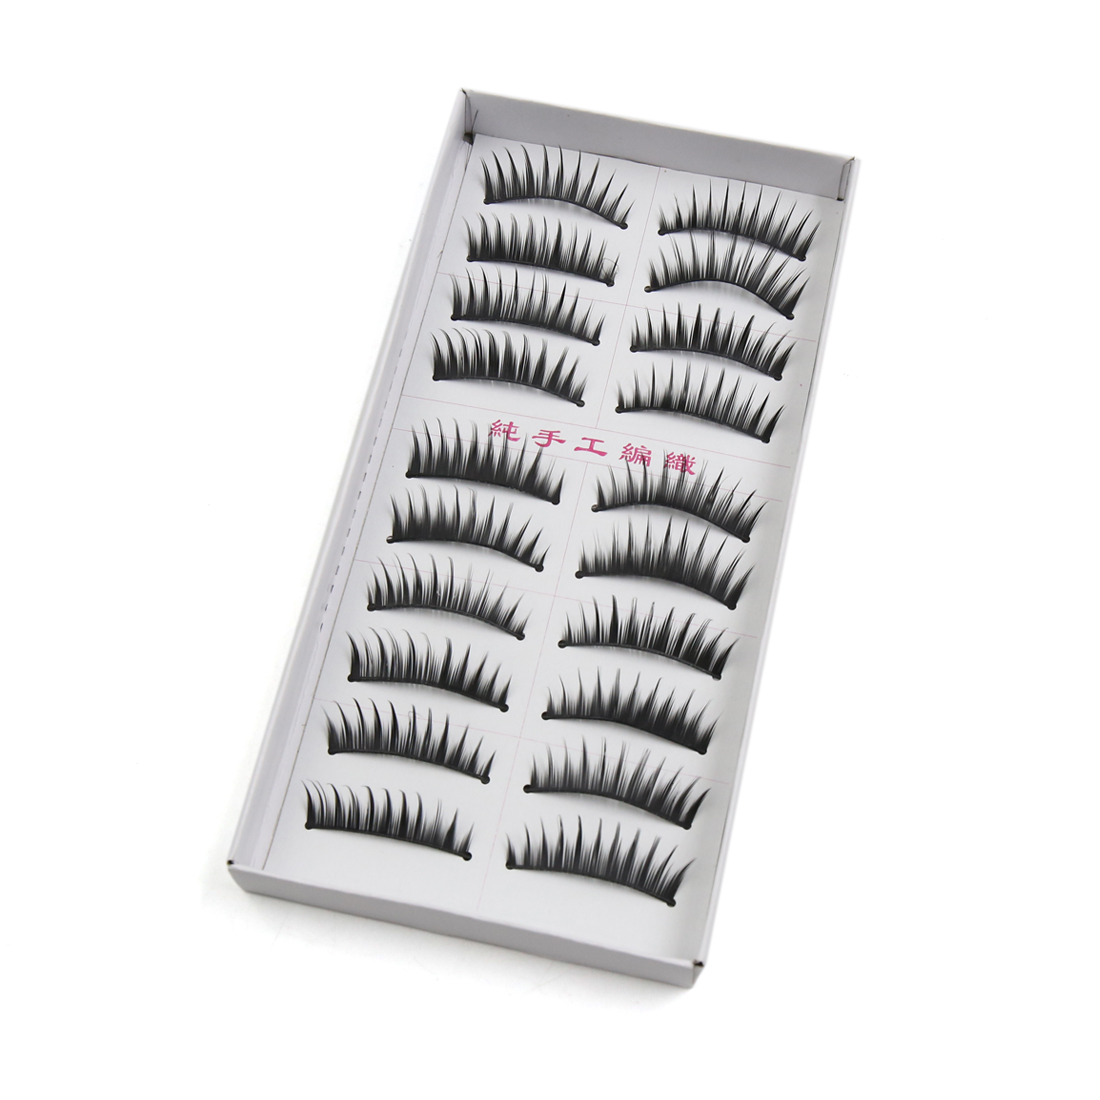 "20pcs Natural Looking False Eyelashe Extension Eye Makeup 0.7"" Length"